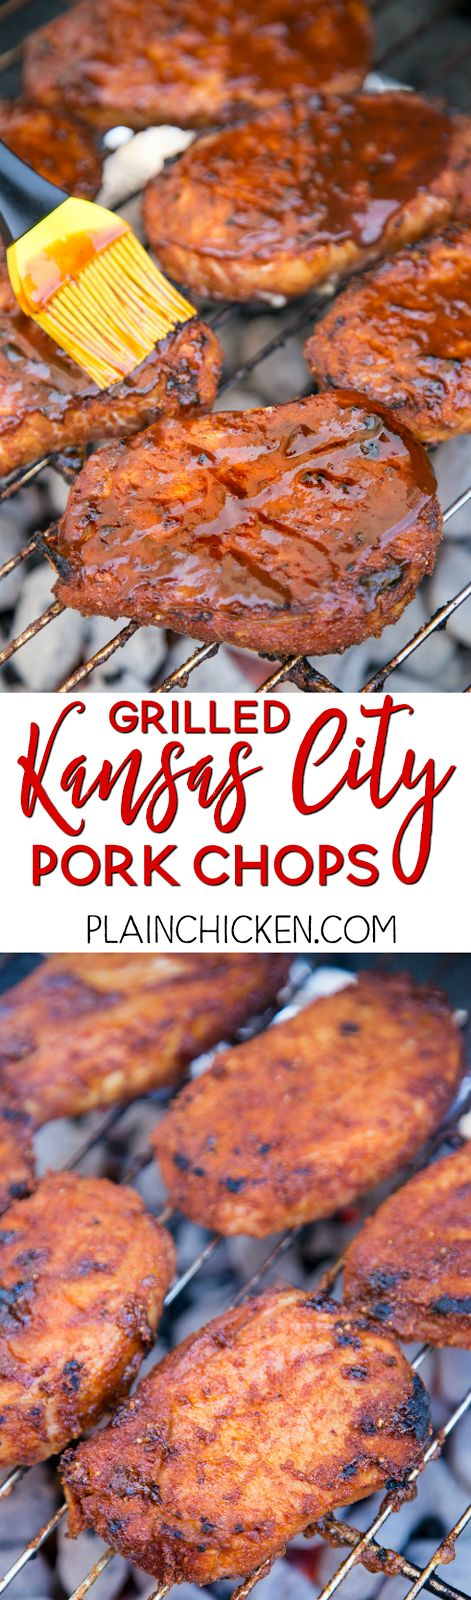 Grilled Kansas City Pork Chops | Plain Chicken